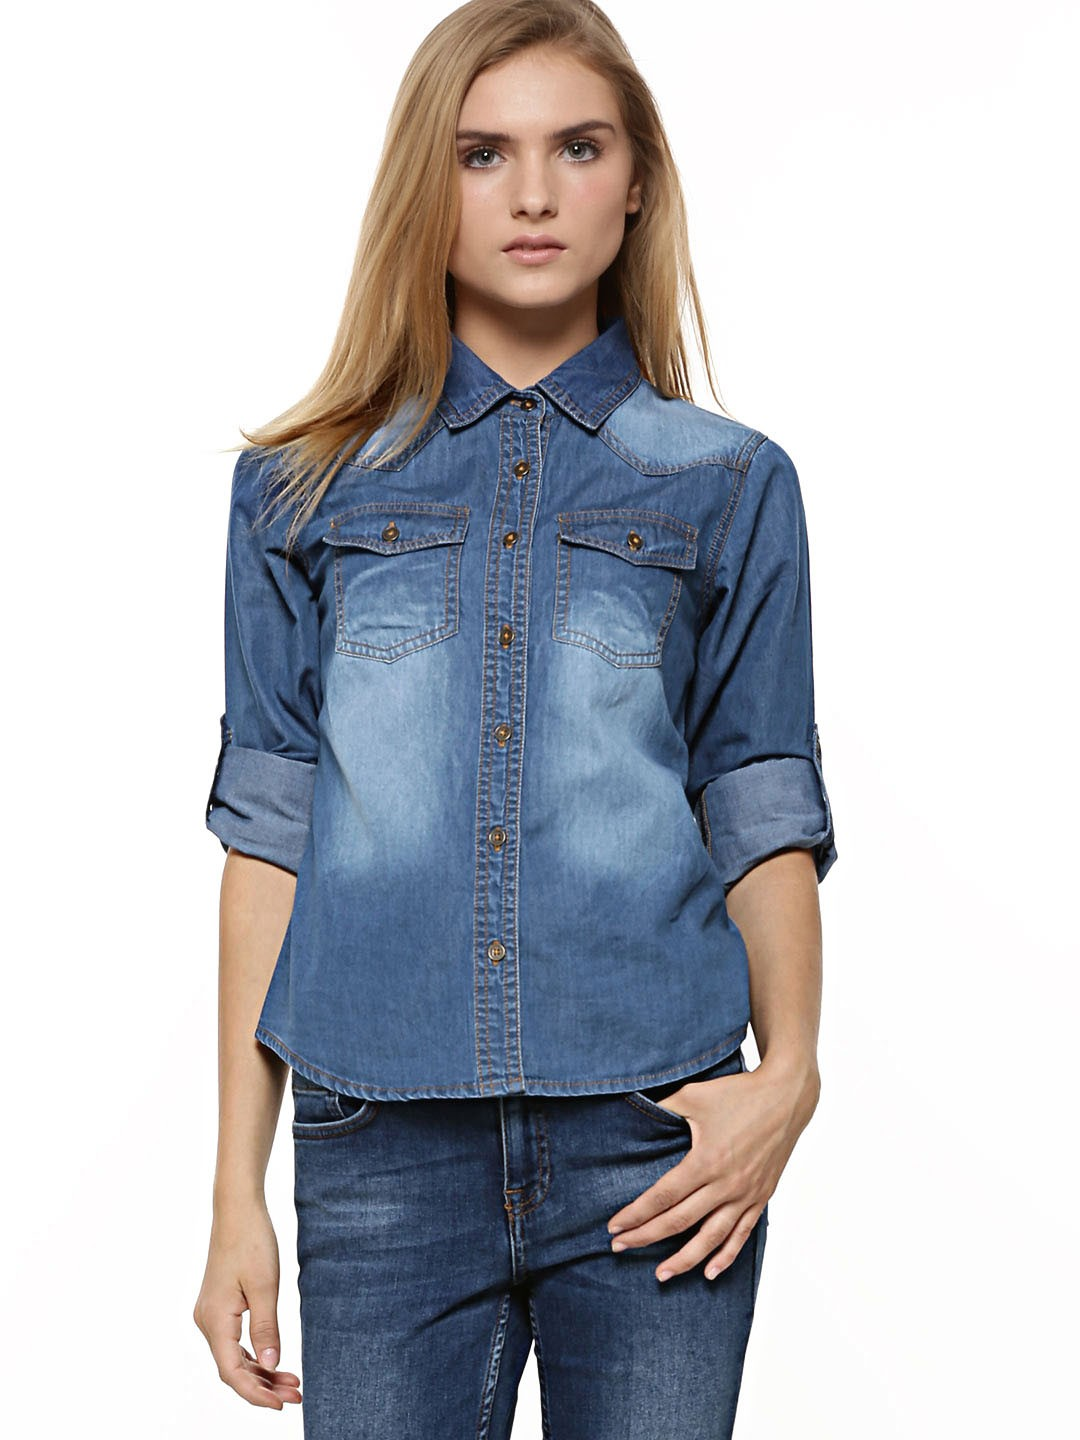 Buy koovs dark wash denim shirt for women women 39 s blue for Blue denim shirt for womens